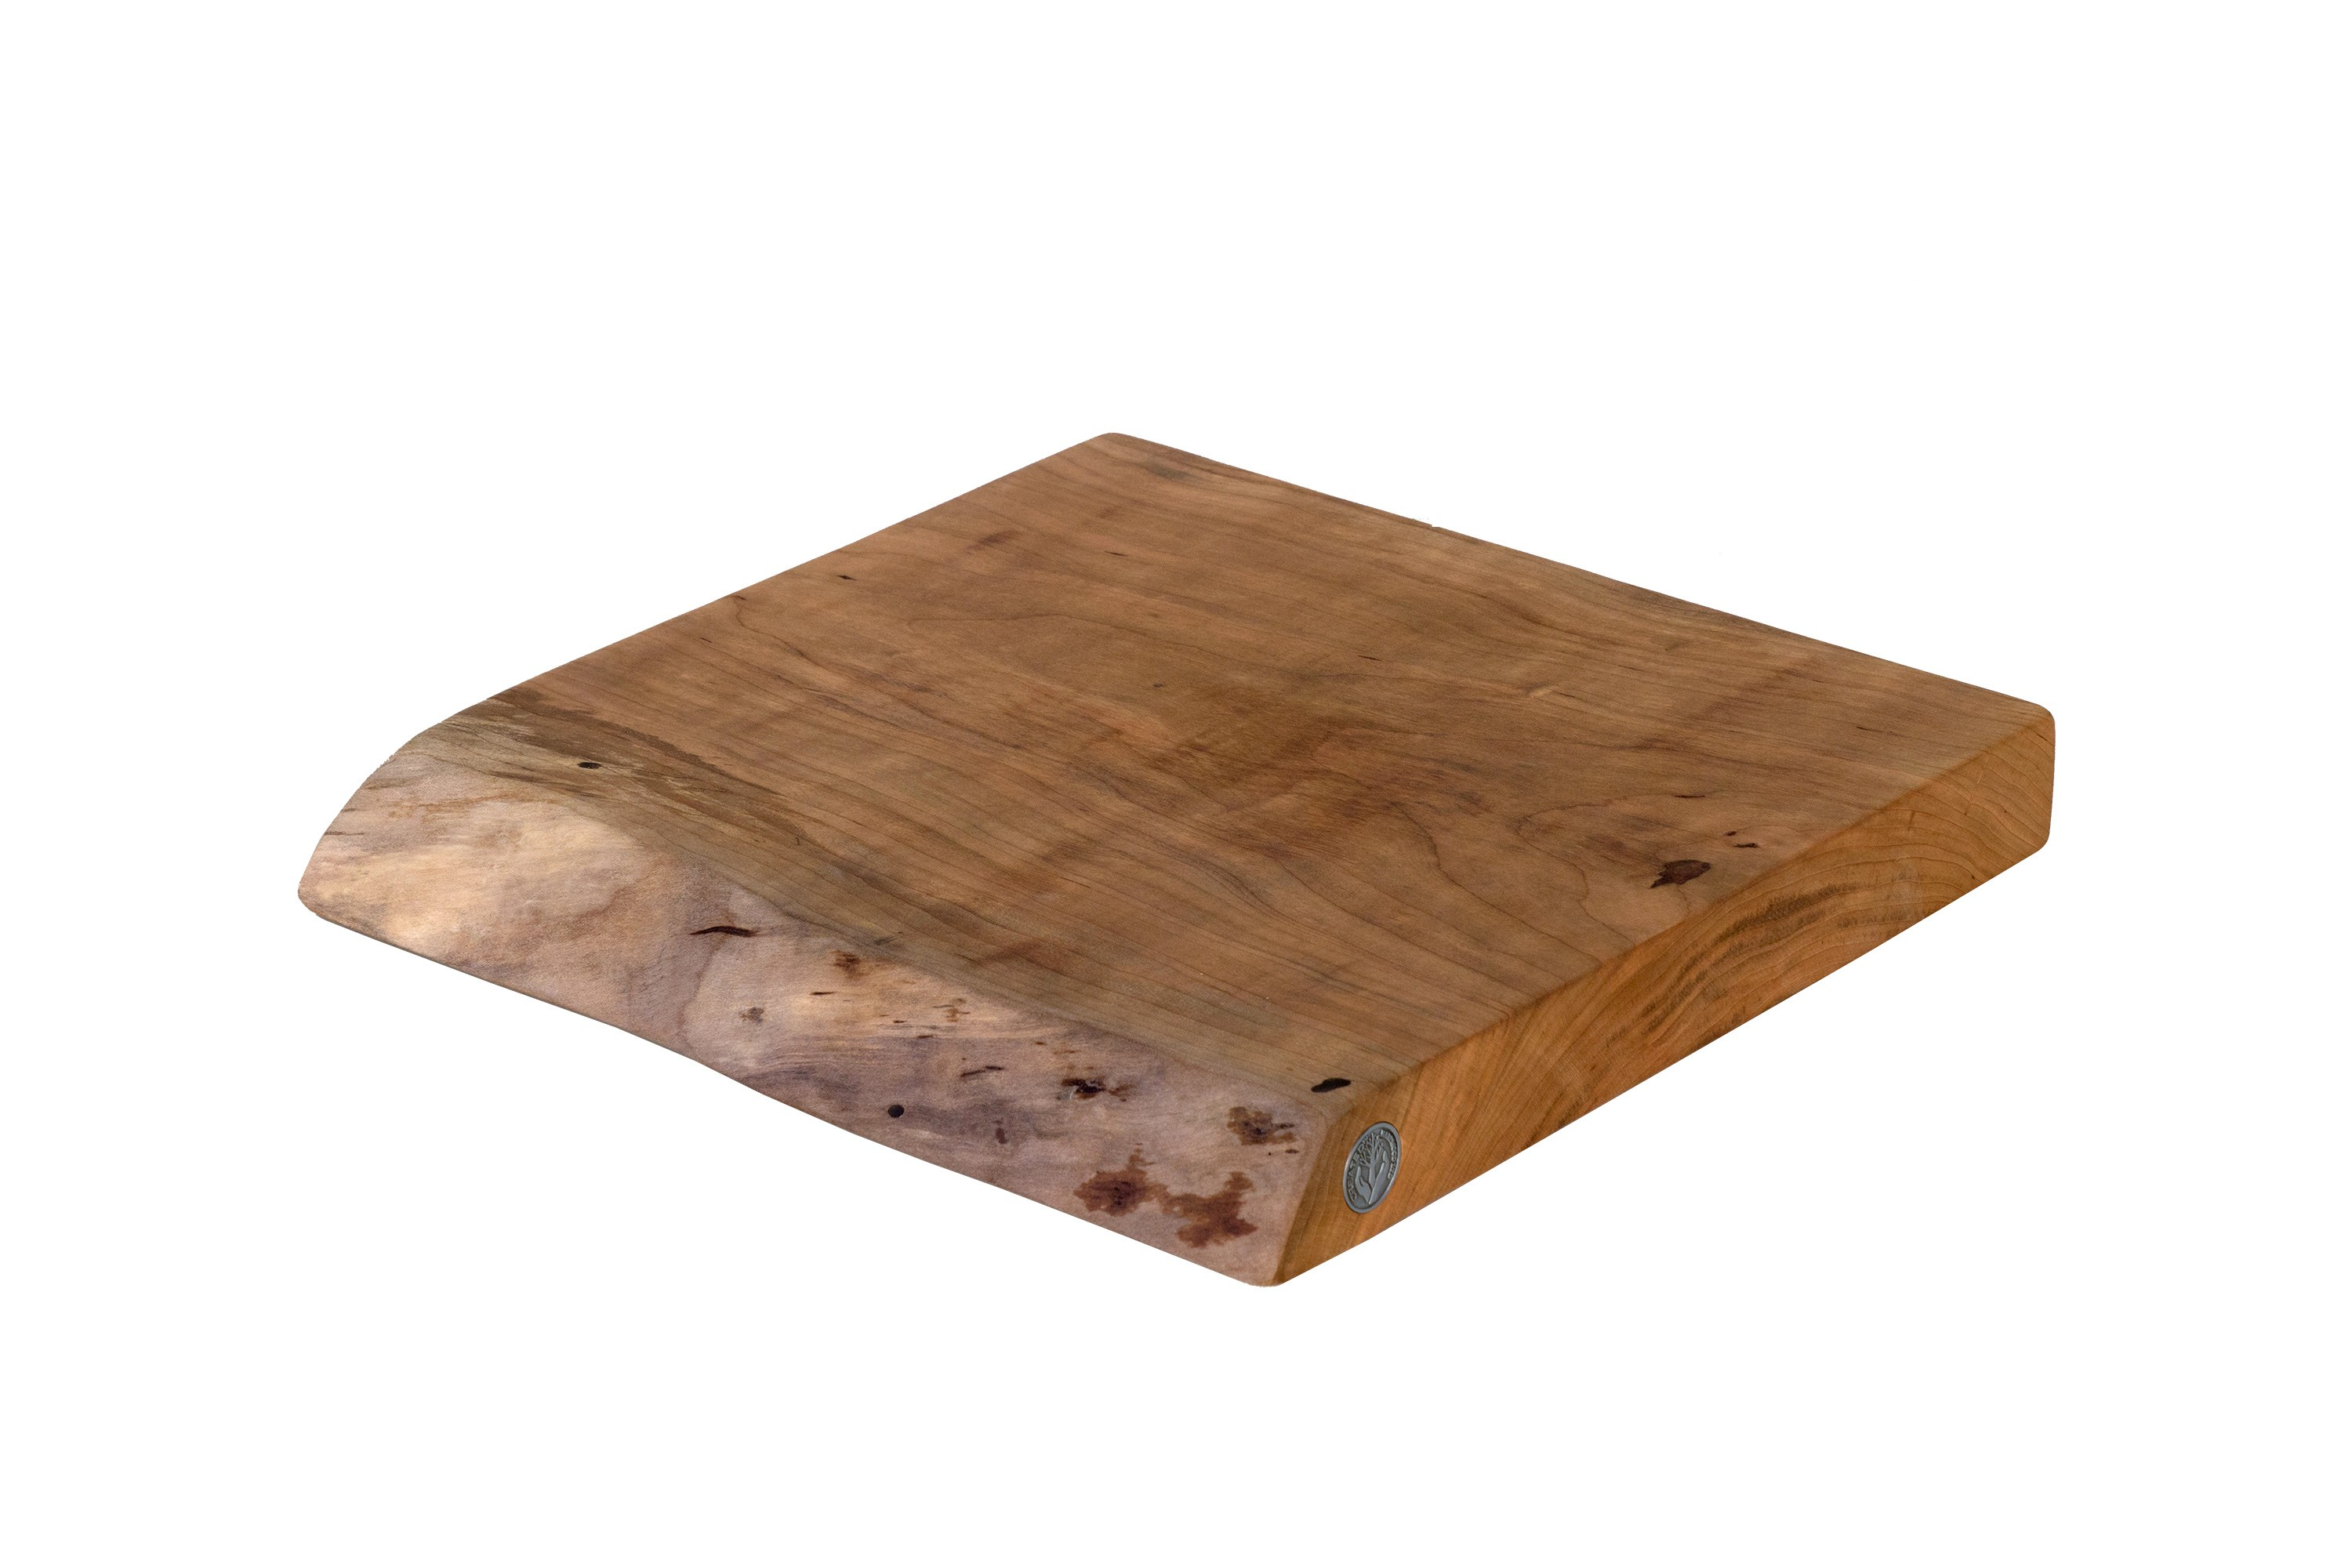 Live Edge Cherry Cutting Board #119- 15